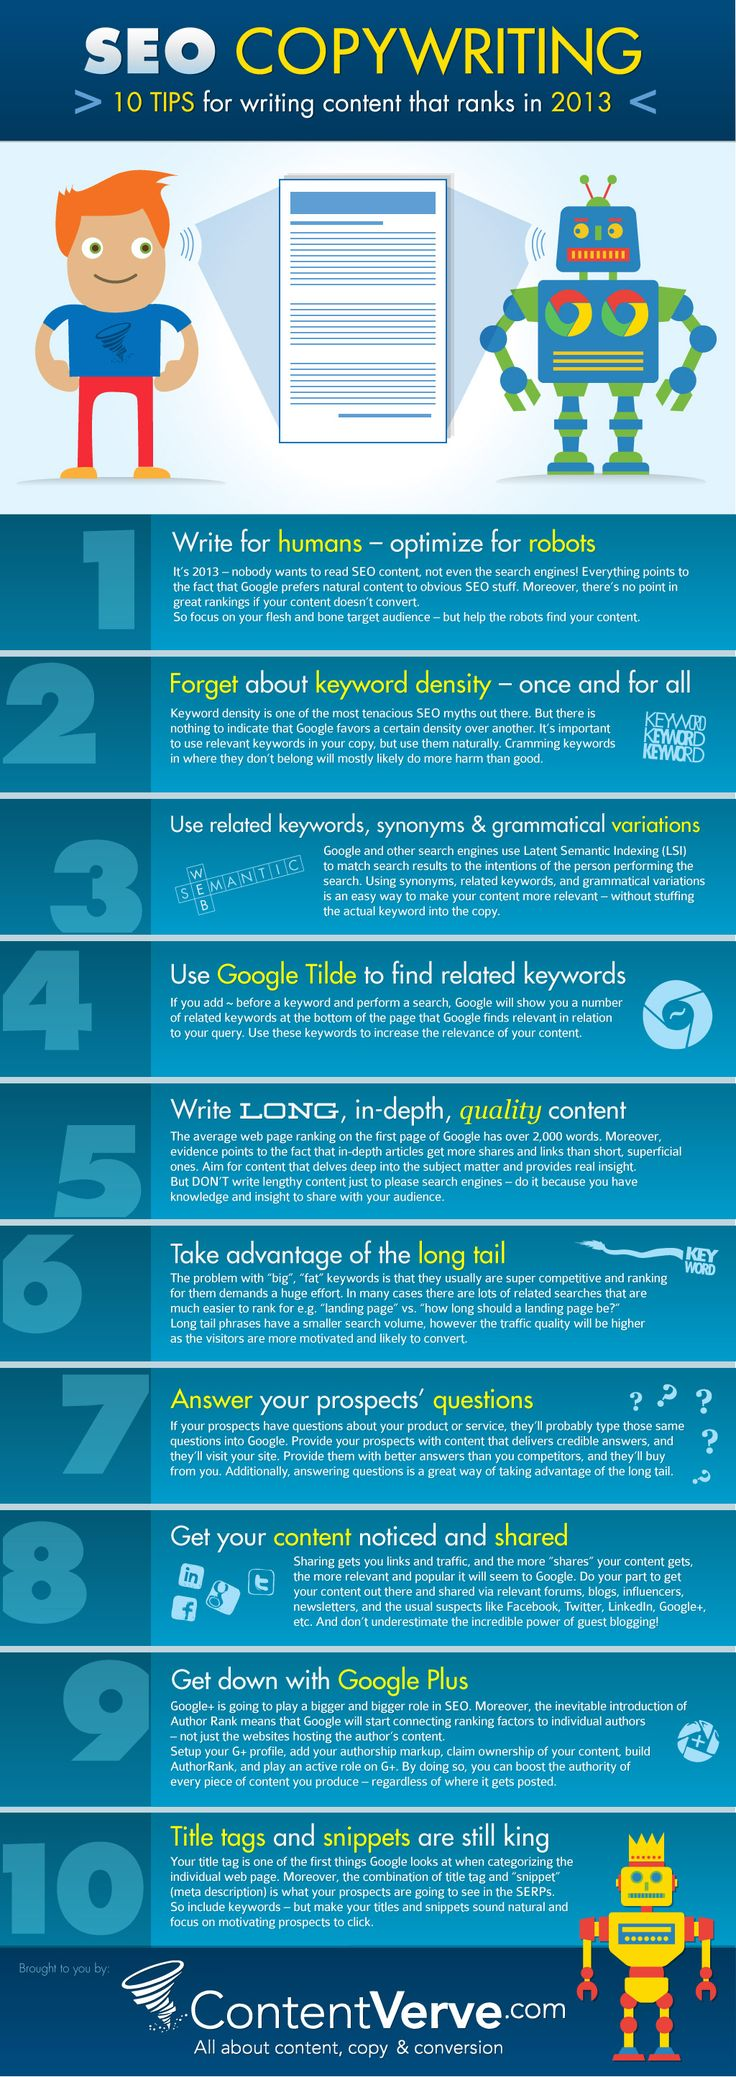 10 Ways to Write Content That Ranks High on Google